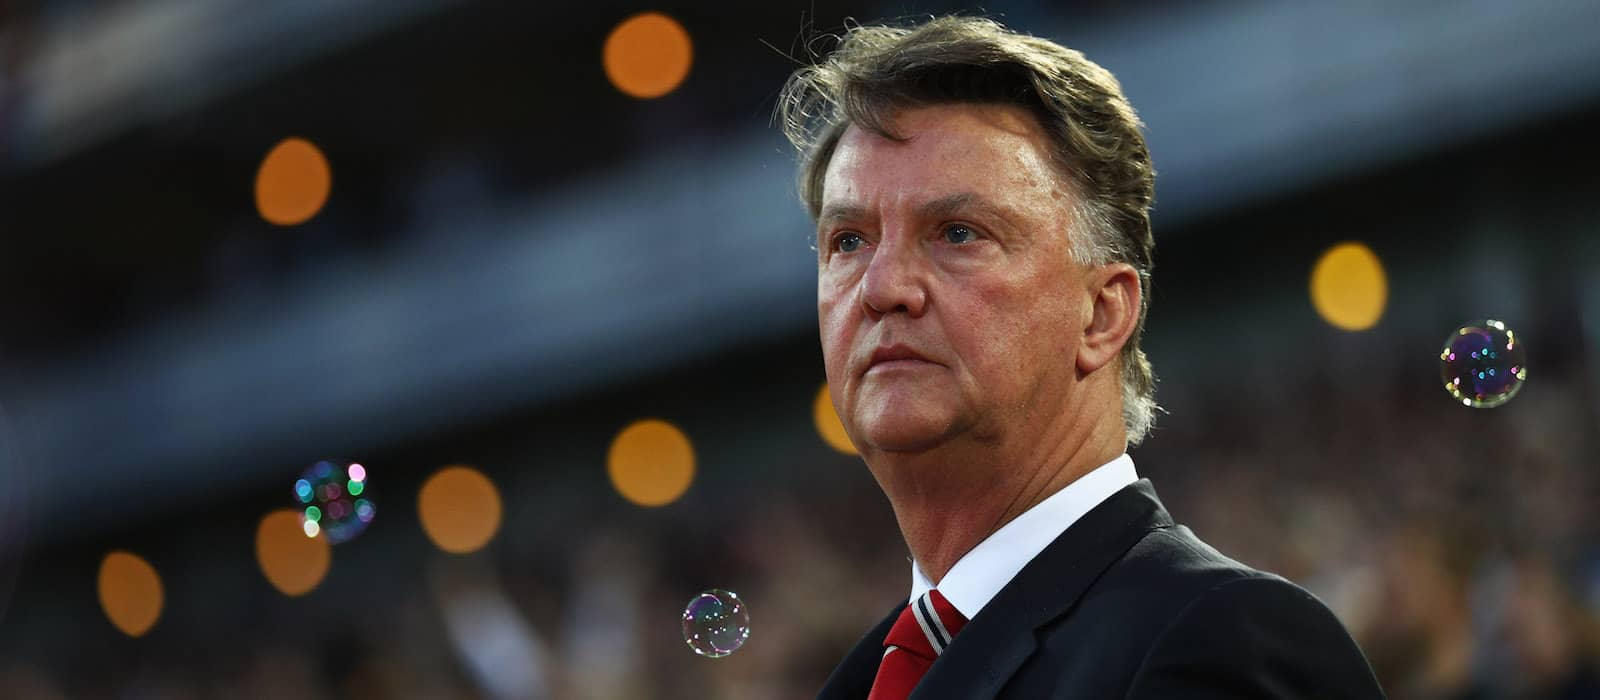 Gary Neville: Manchester United are still recovering from the Louis van Gaal era